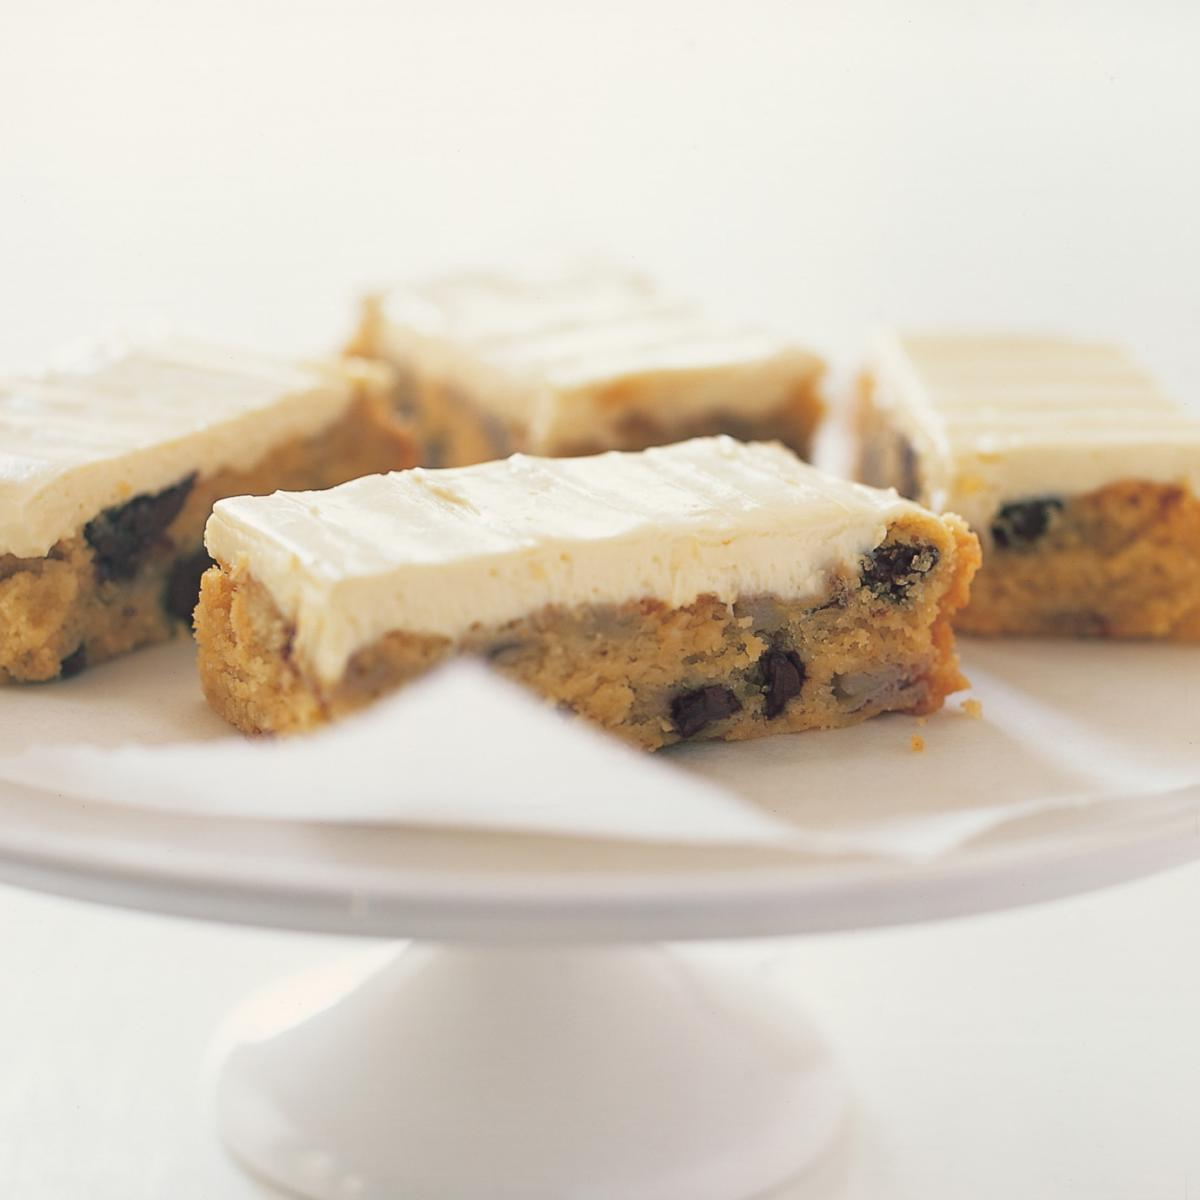 A picture of Delia's Banana and Chocolate Chip Slice recipe